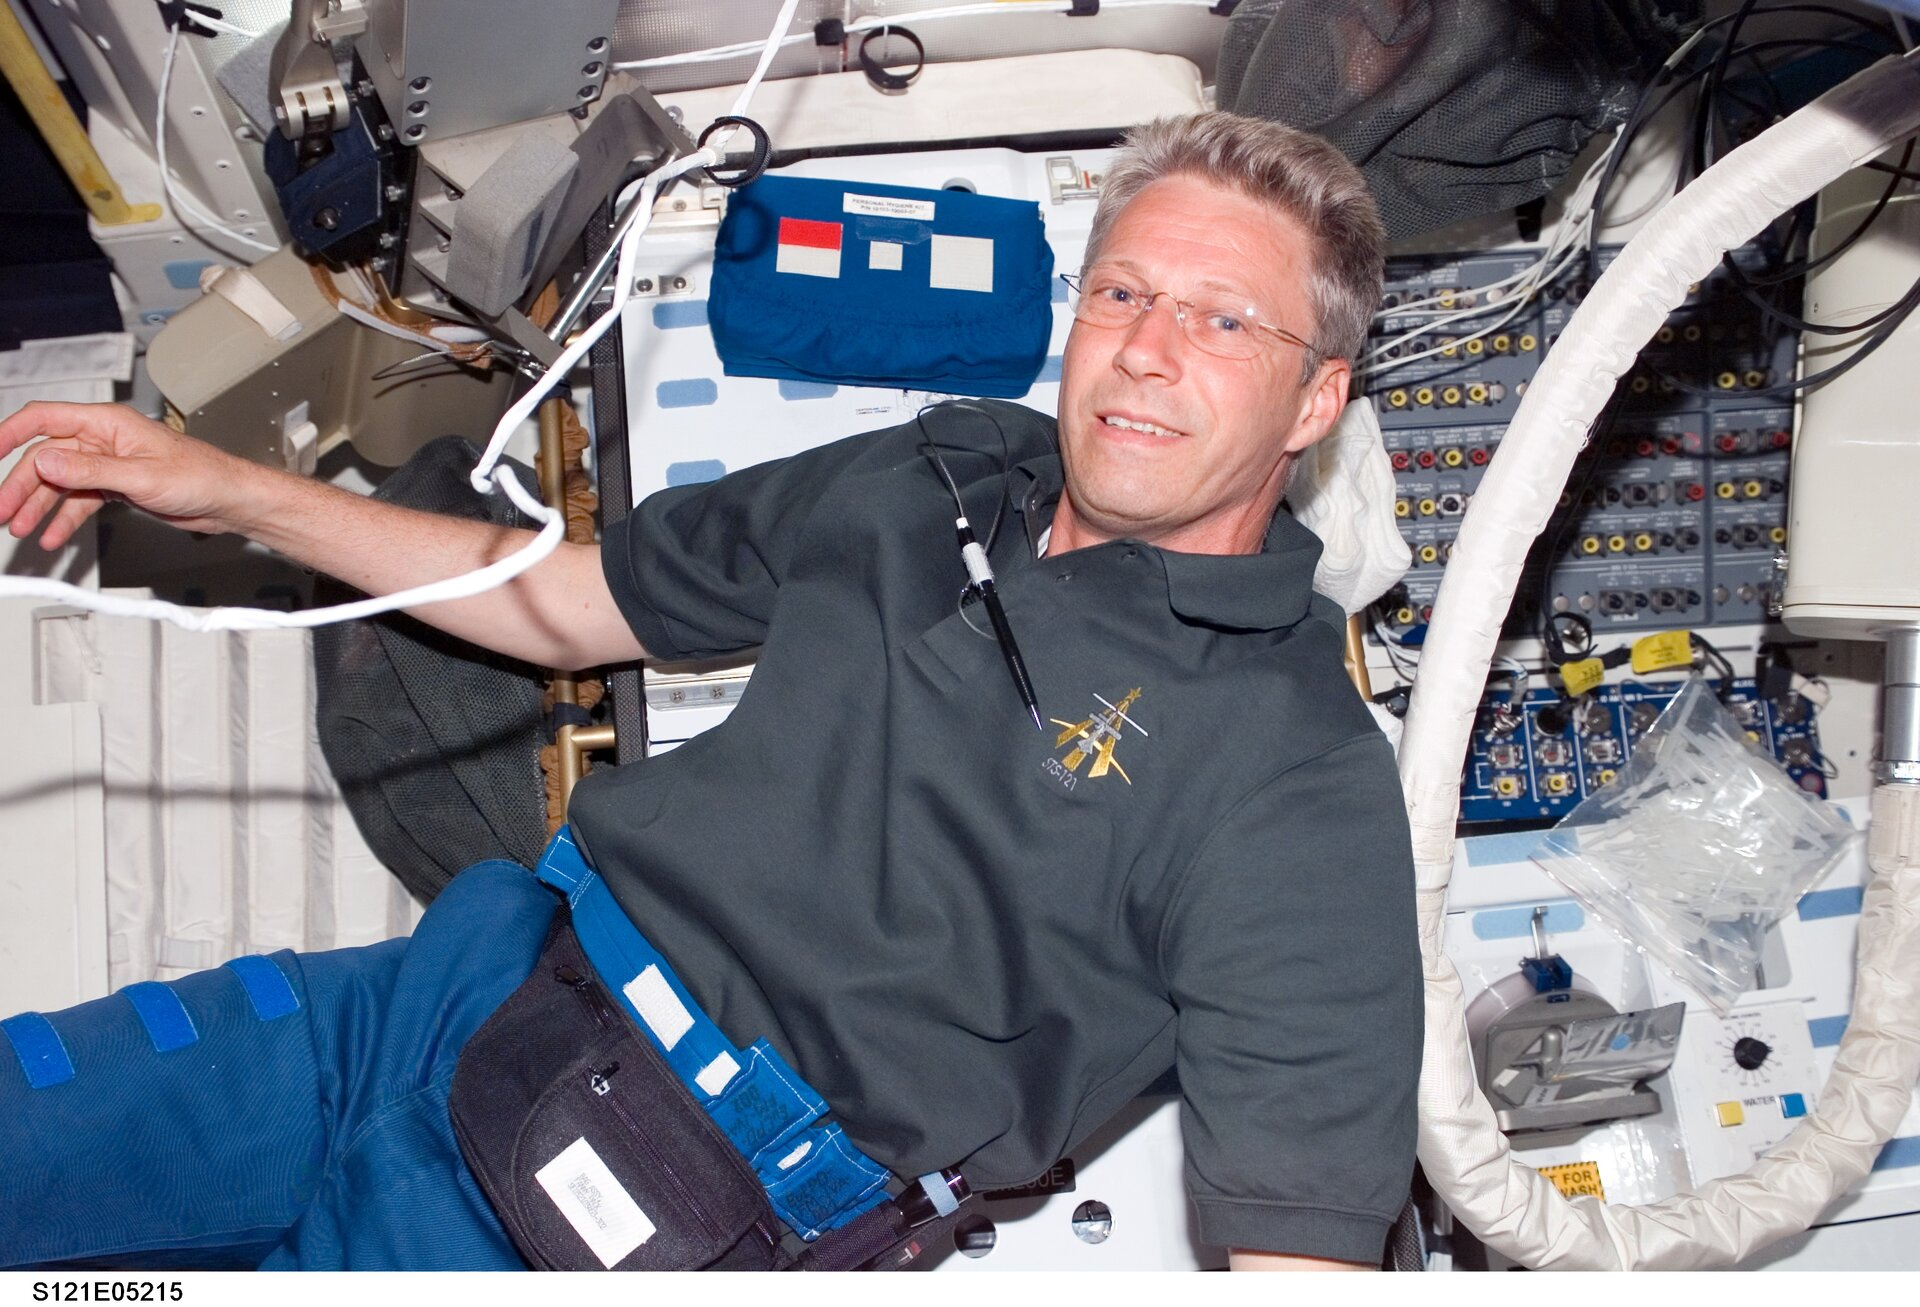 Reiter will answer questions during an ARISS radio contact on 20 November 2006